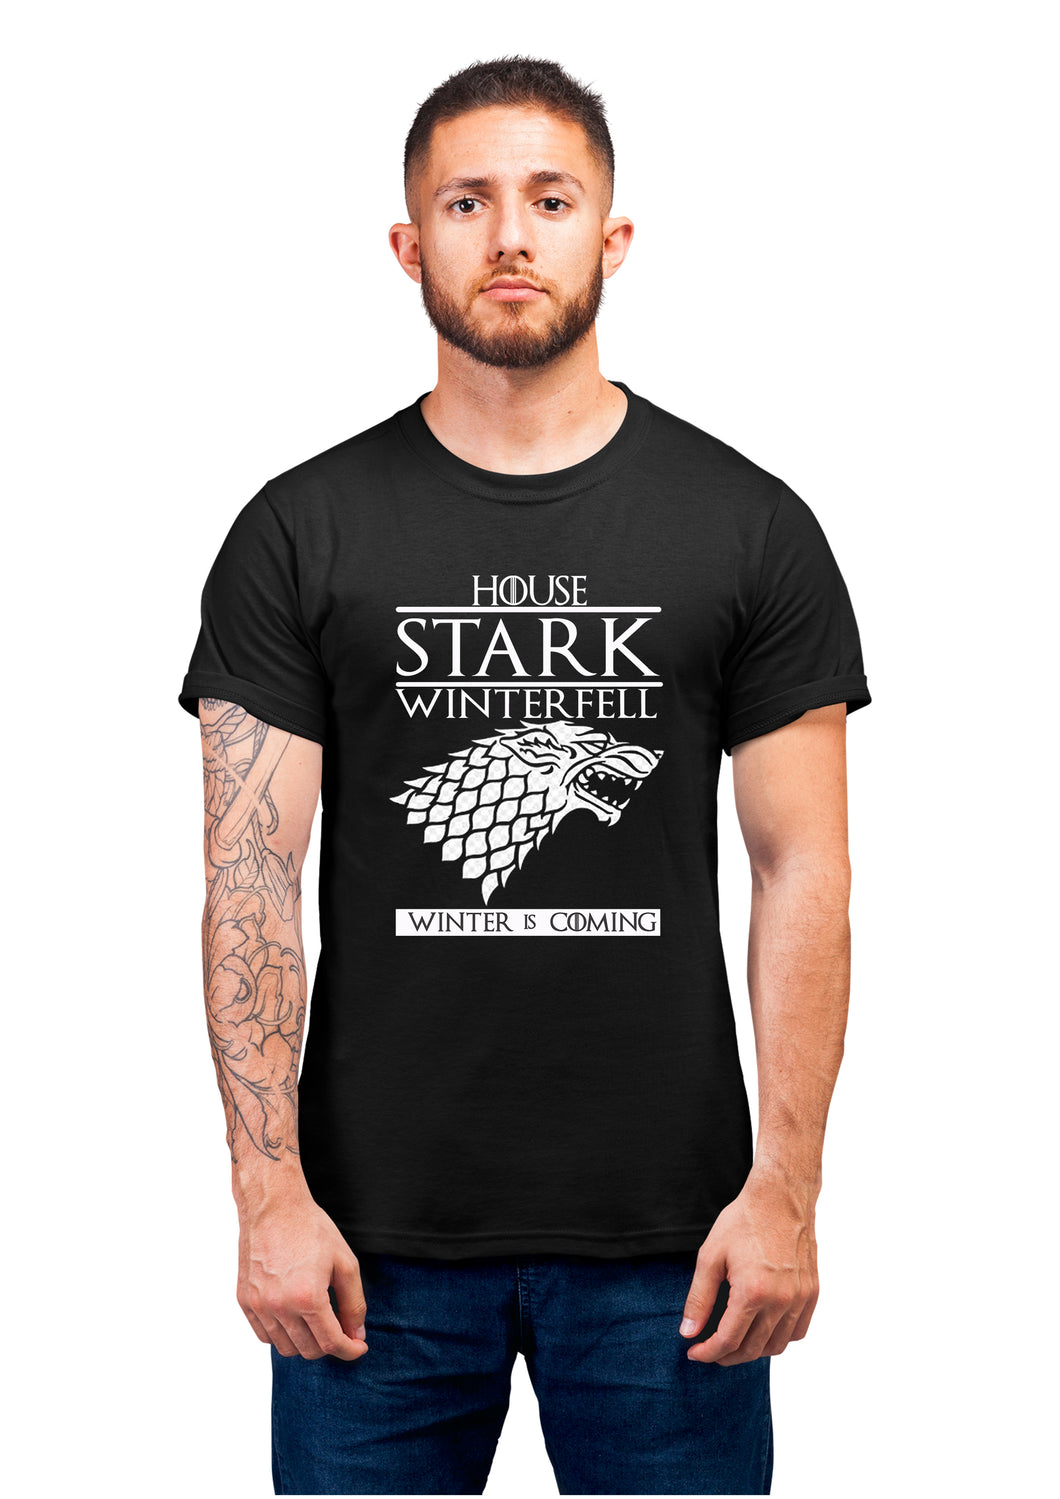 Got-46 House Stark Winter Feel Winter Is Coming Half Sleeve Black